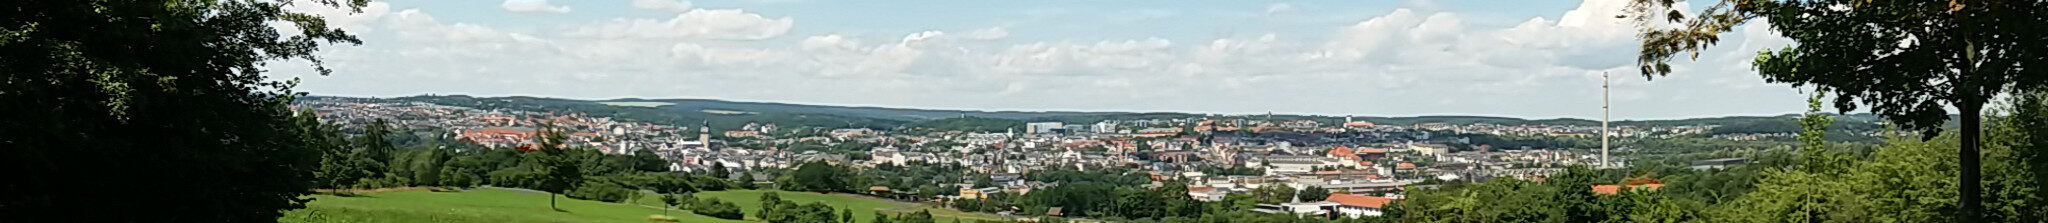 margy-plauen.de